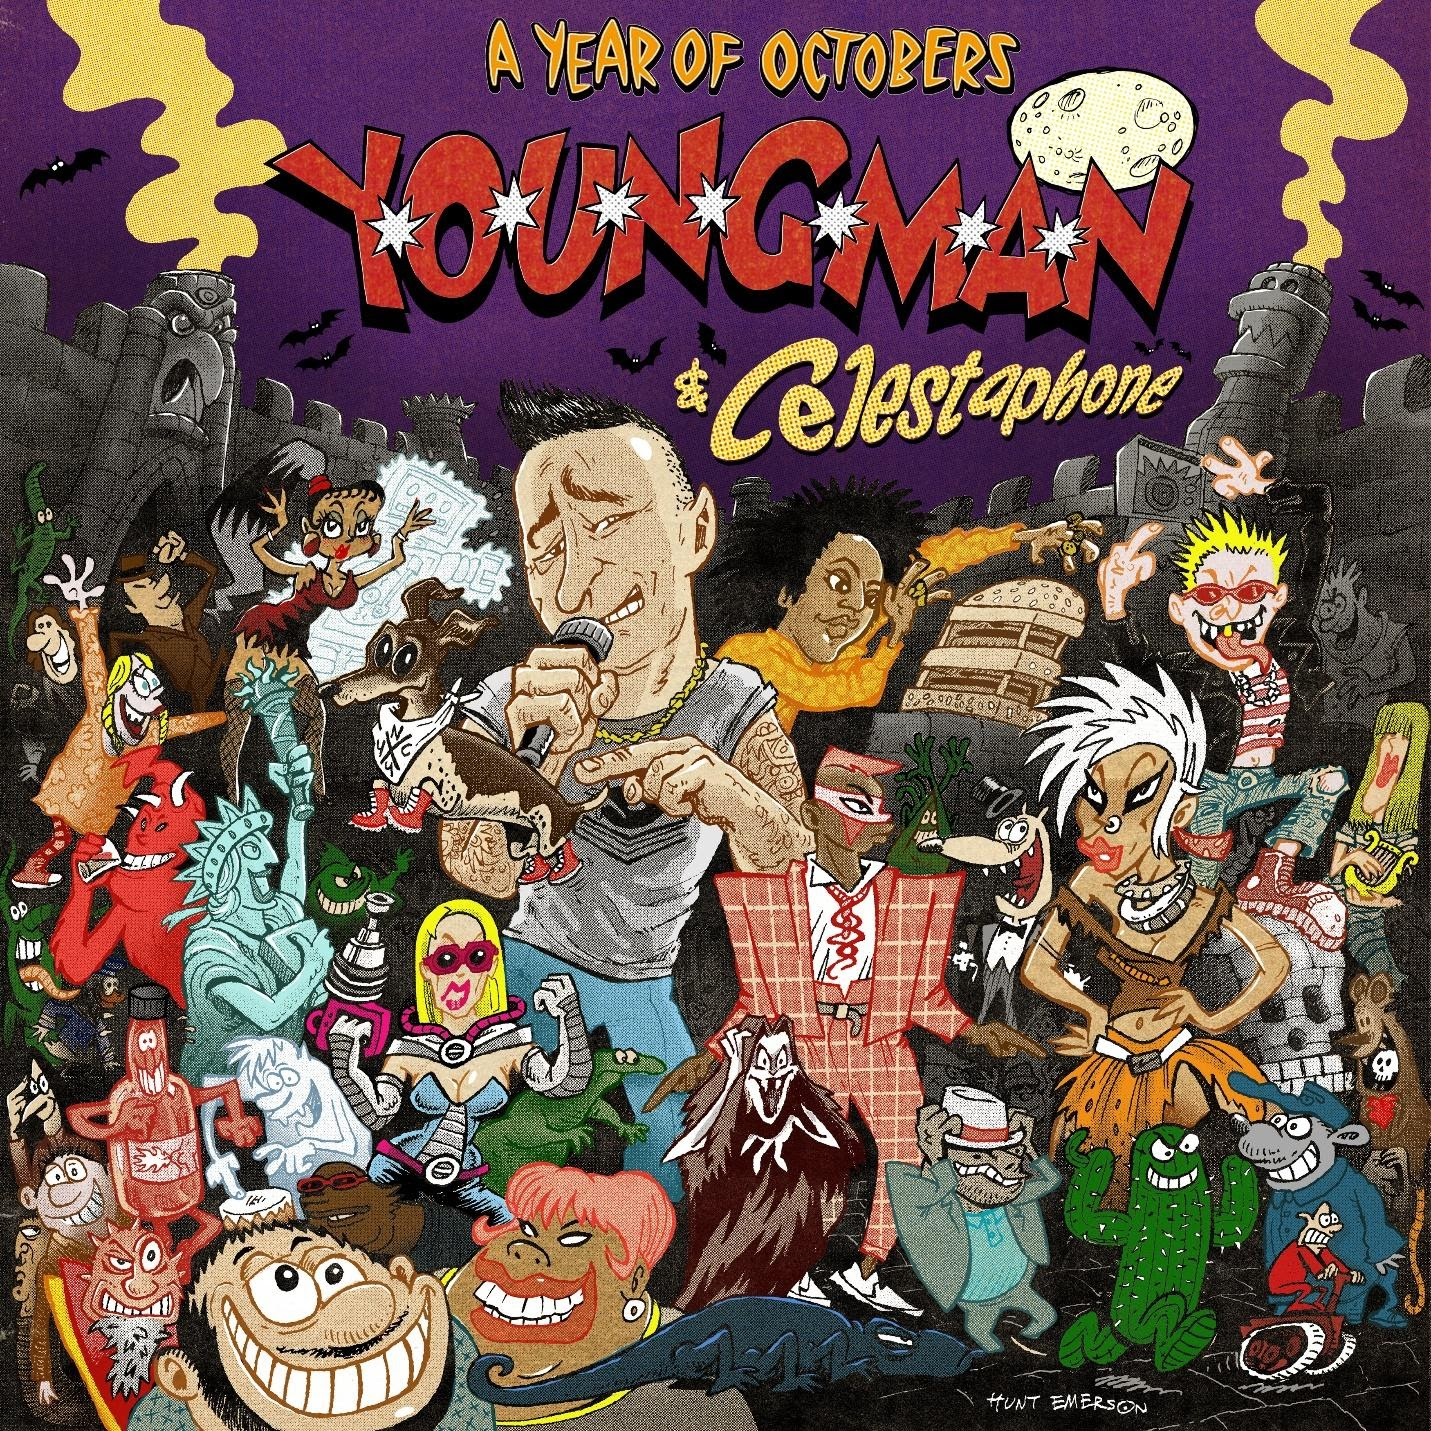 YOUNGMAN and Celestaphone's Groundbreaking Album, A YEAR OF OCTOBERS, Has Landed